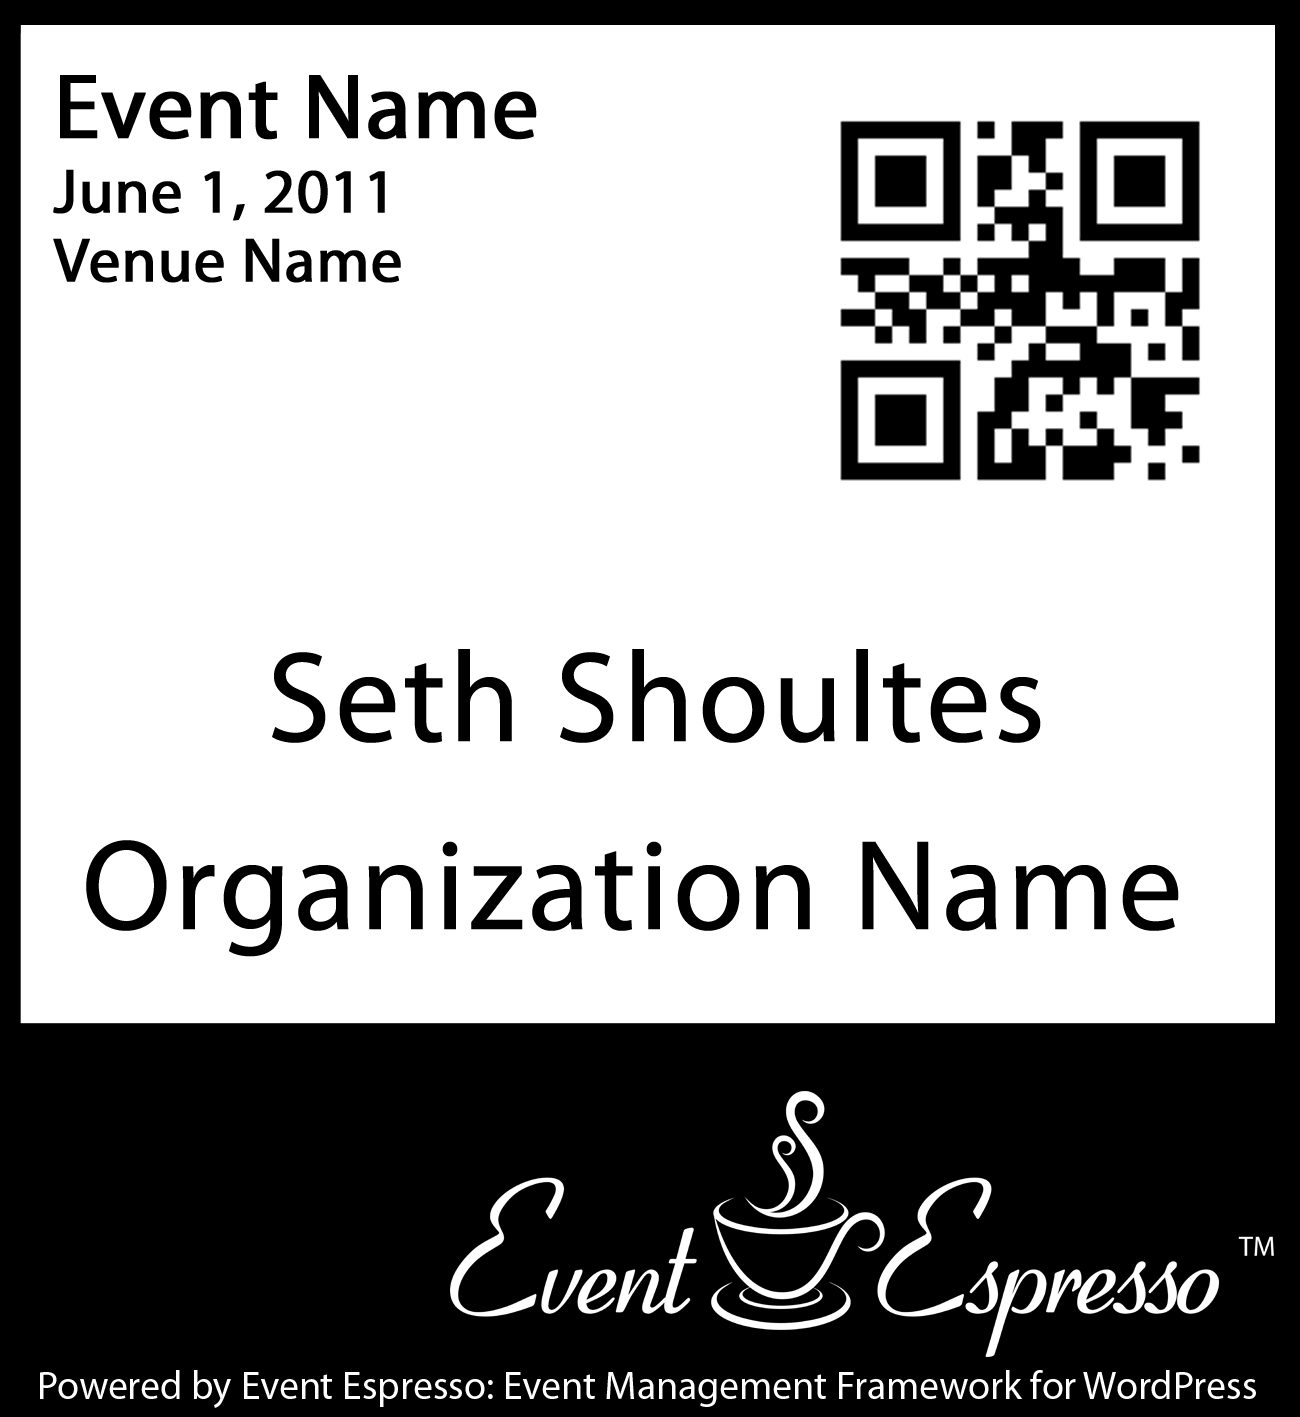 Event Espresso Name Badge